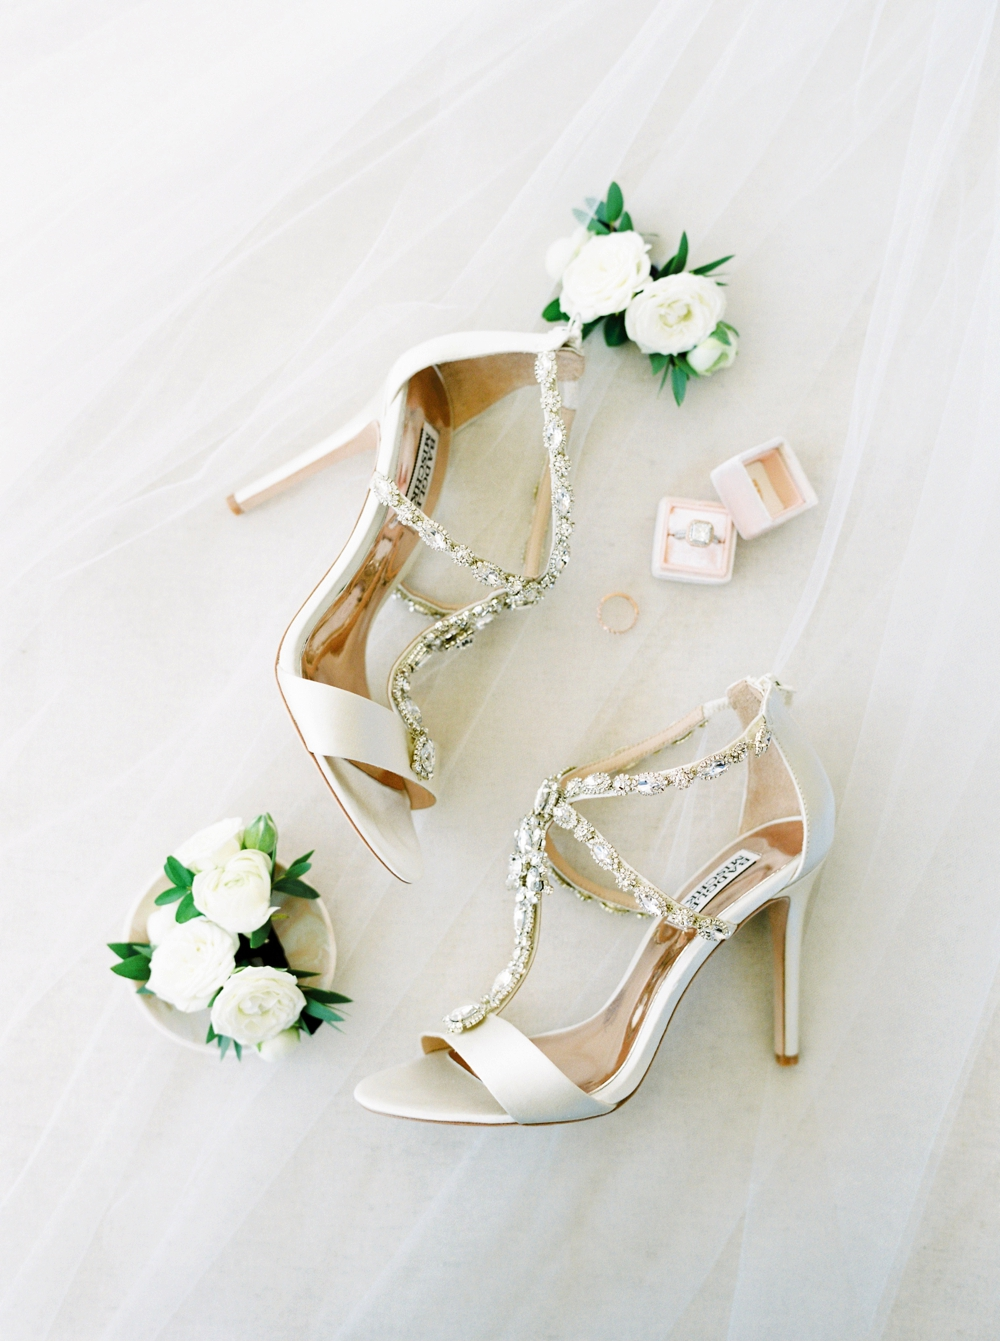 Bride Getting ready wedding details badgley mischka wedding shoes | Banff Wedding Photographers | Justine Milton fine art film photography